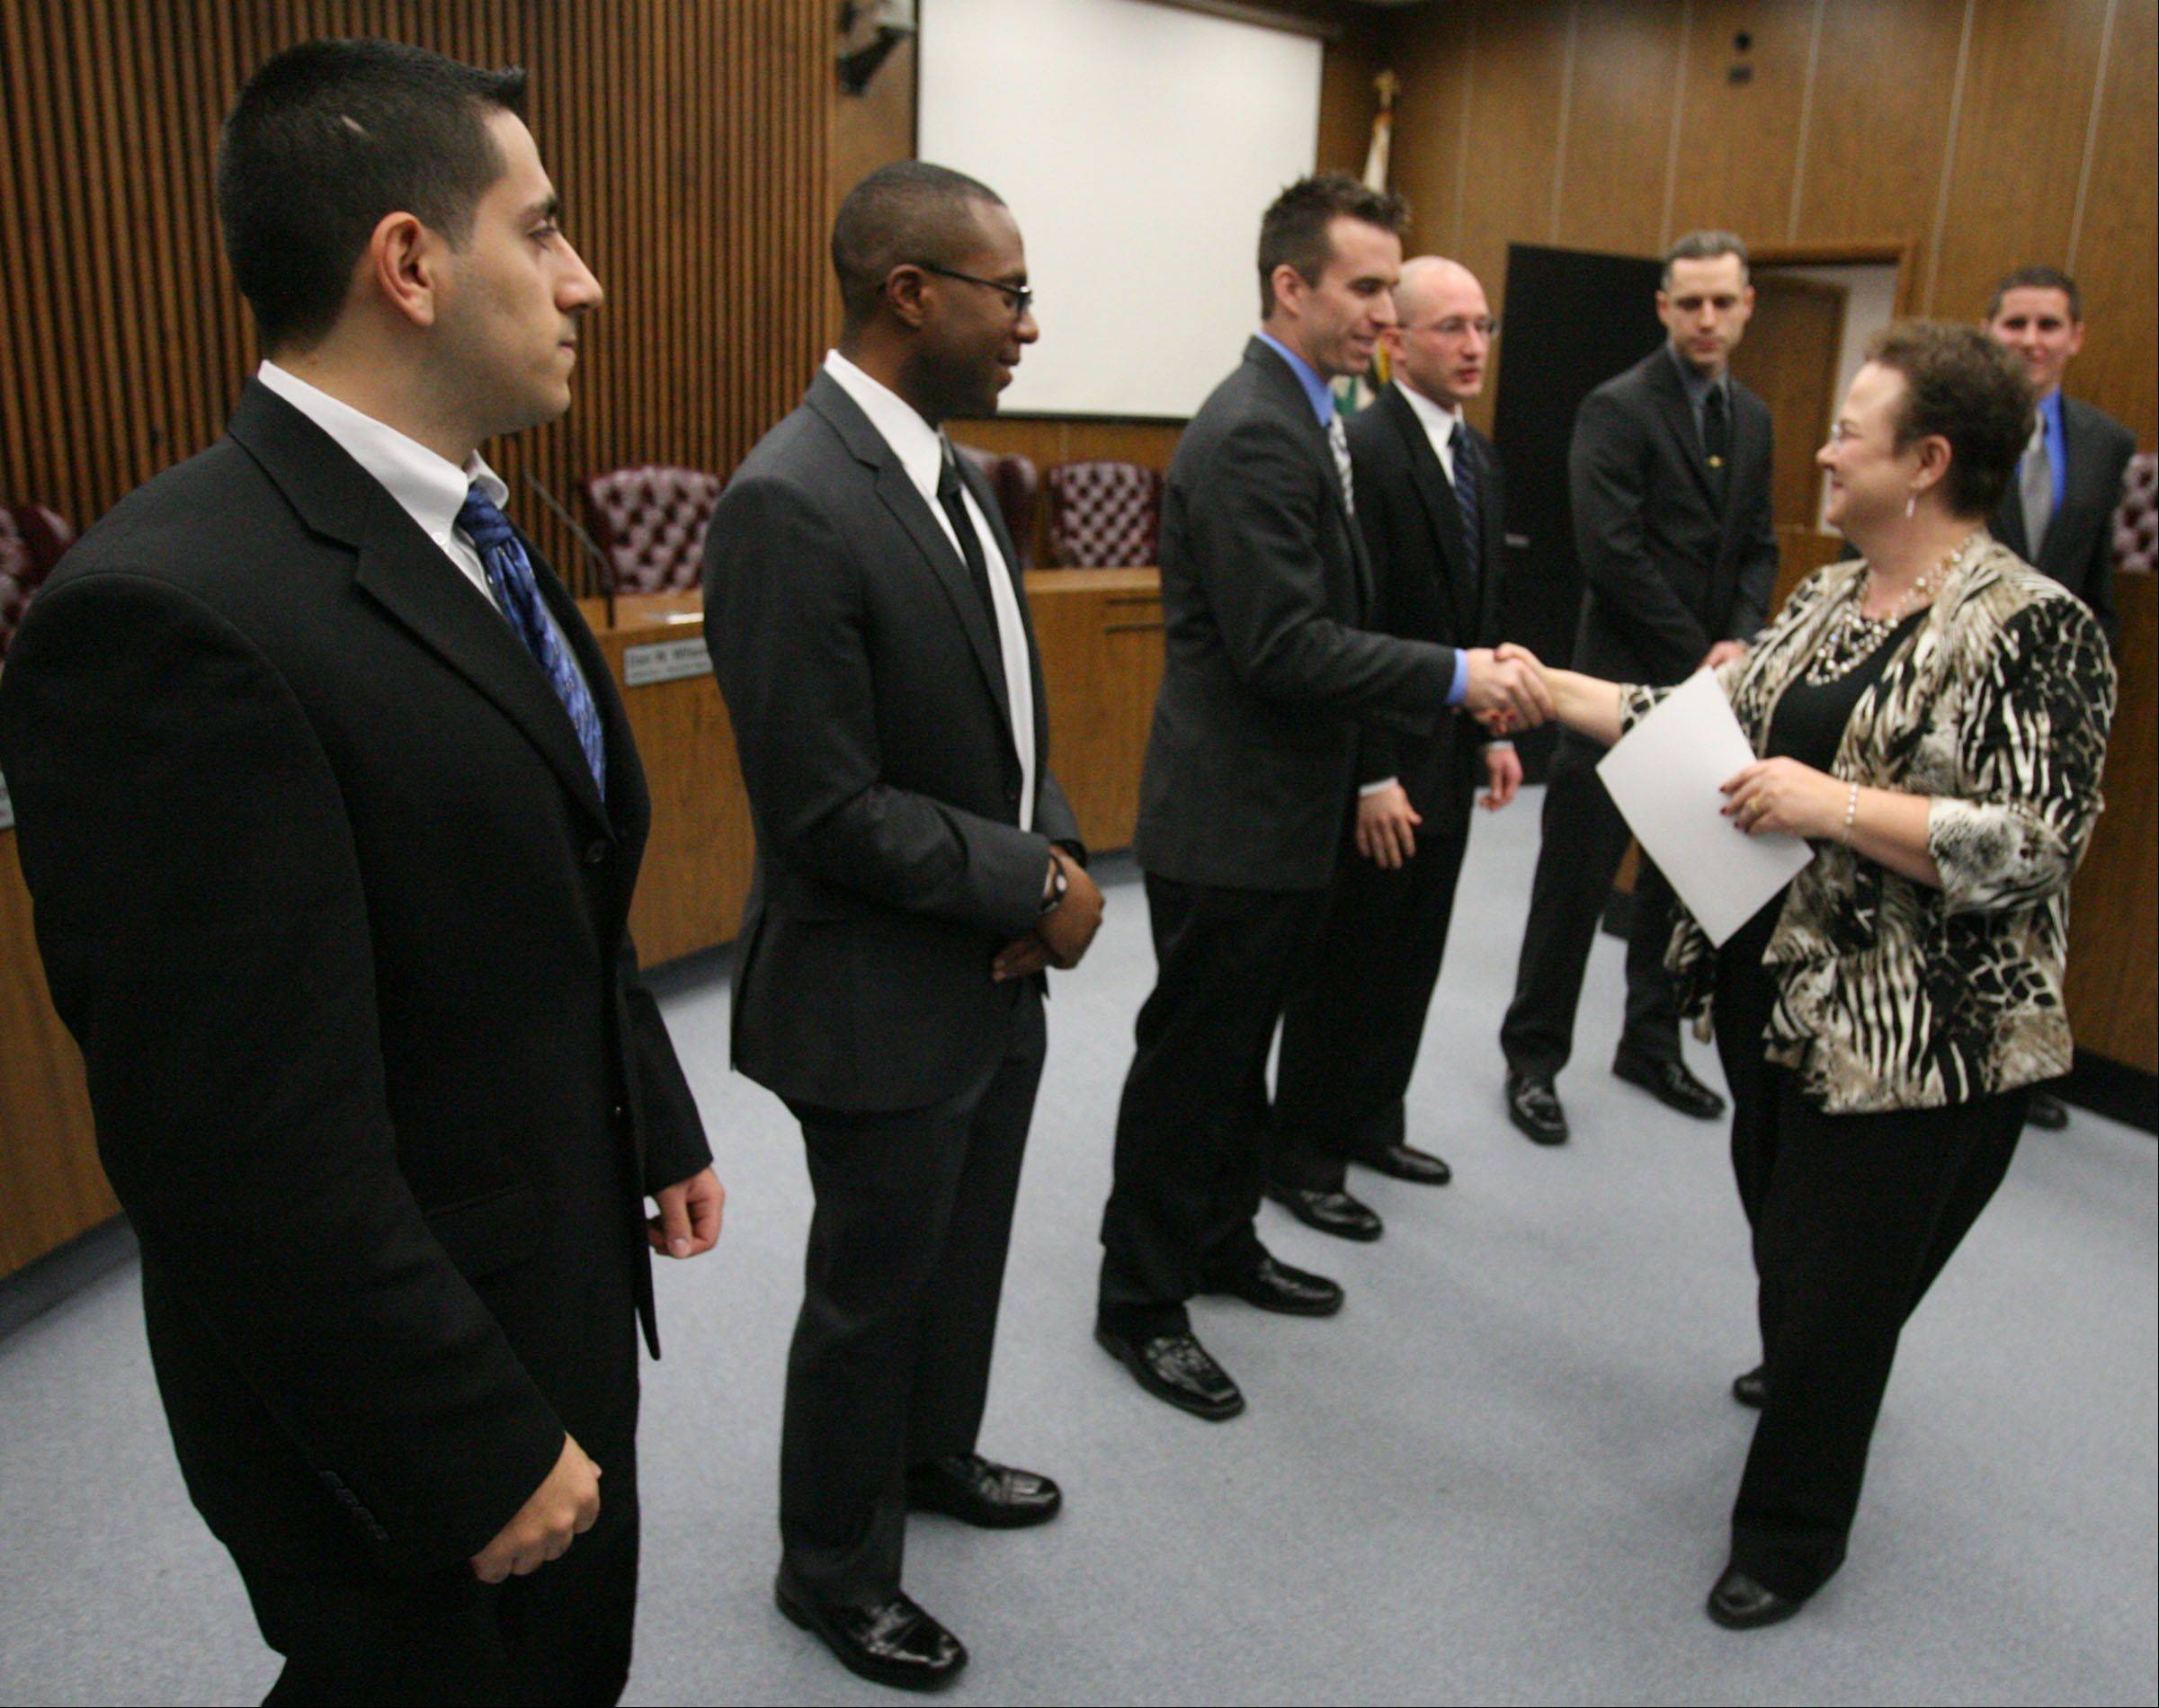 Des Plaines City Clerk Gloria Ludwig congratulated police officers Jack Azar, left to right, William Cozzens, Jimmy Armstrong, Carl Faust, Curtis Miller, and Thomas Doig after swearing them in Wednesday at Des Plaines City Hall.